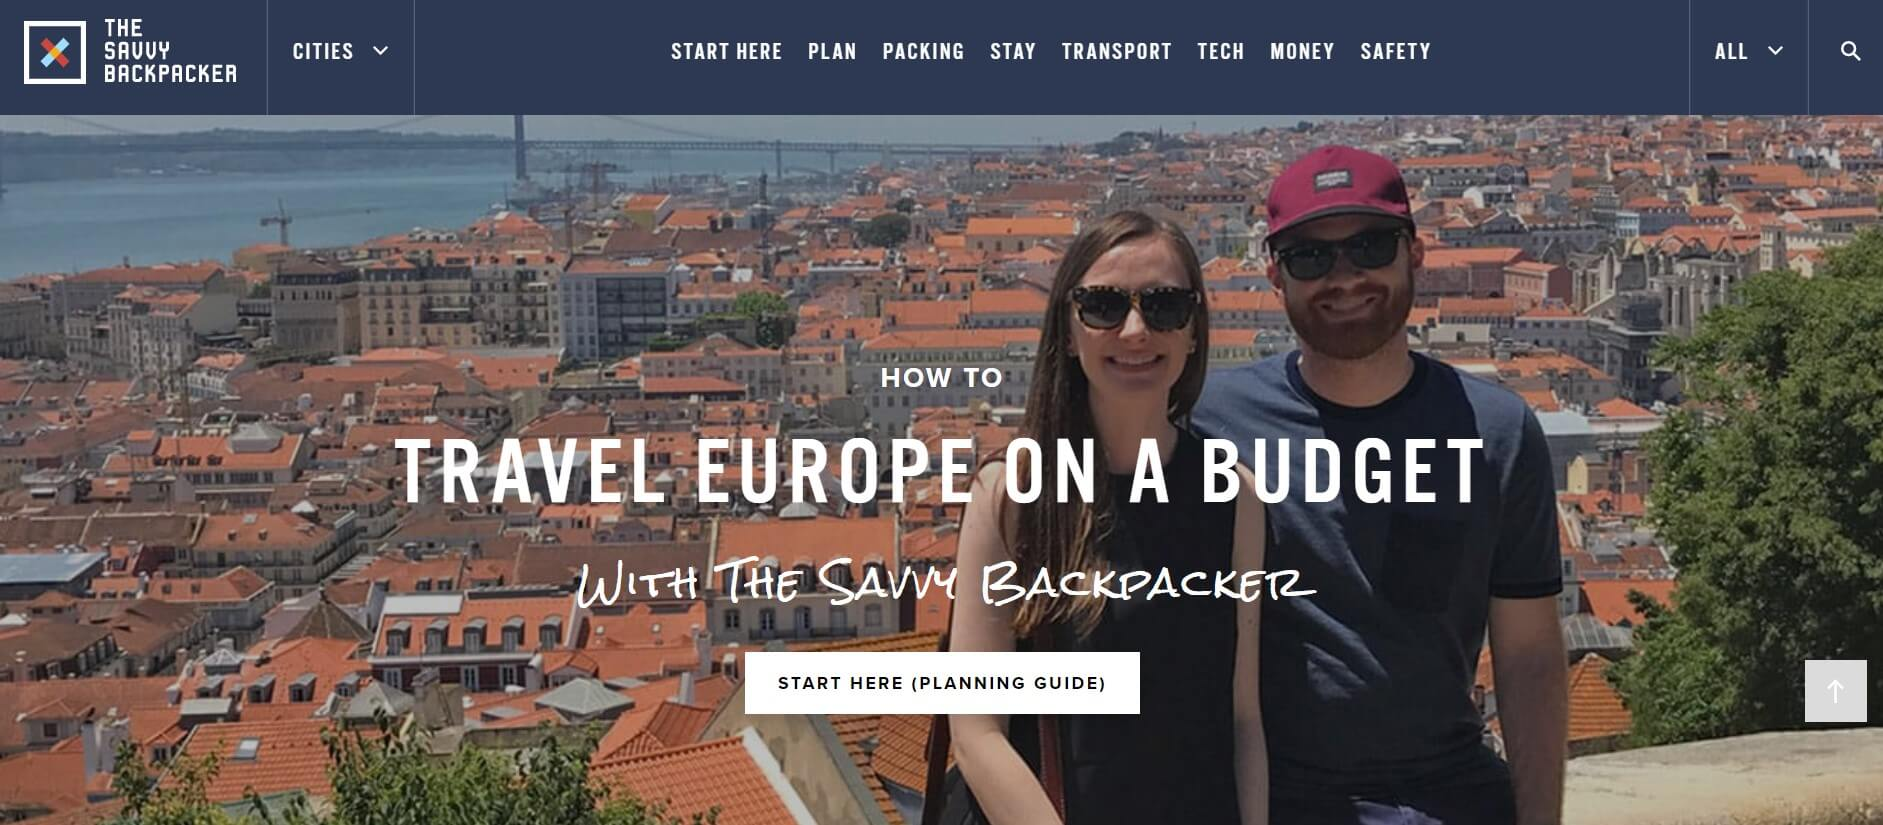 Travel: The Savvy Backpacker